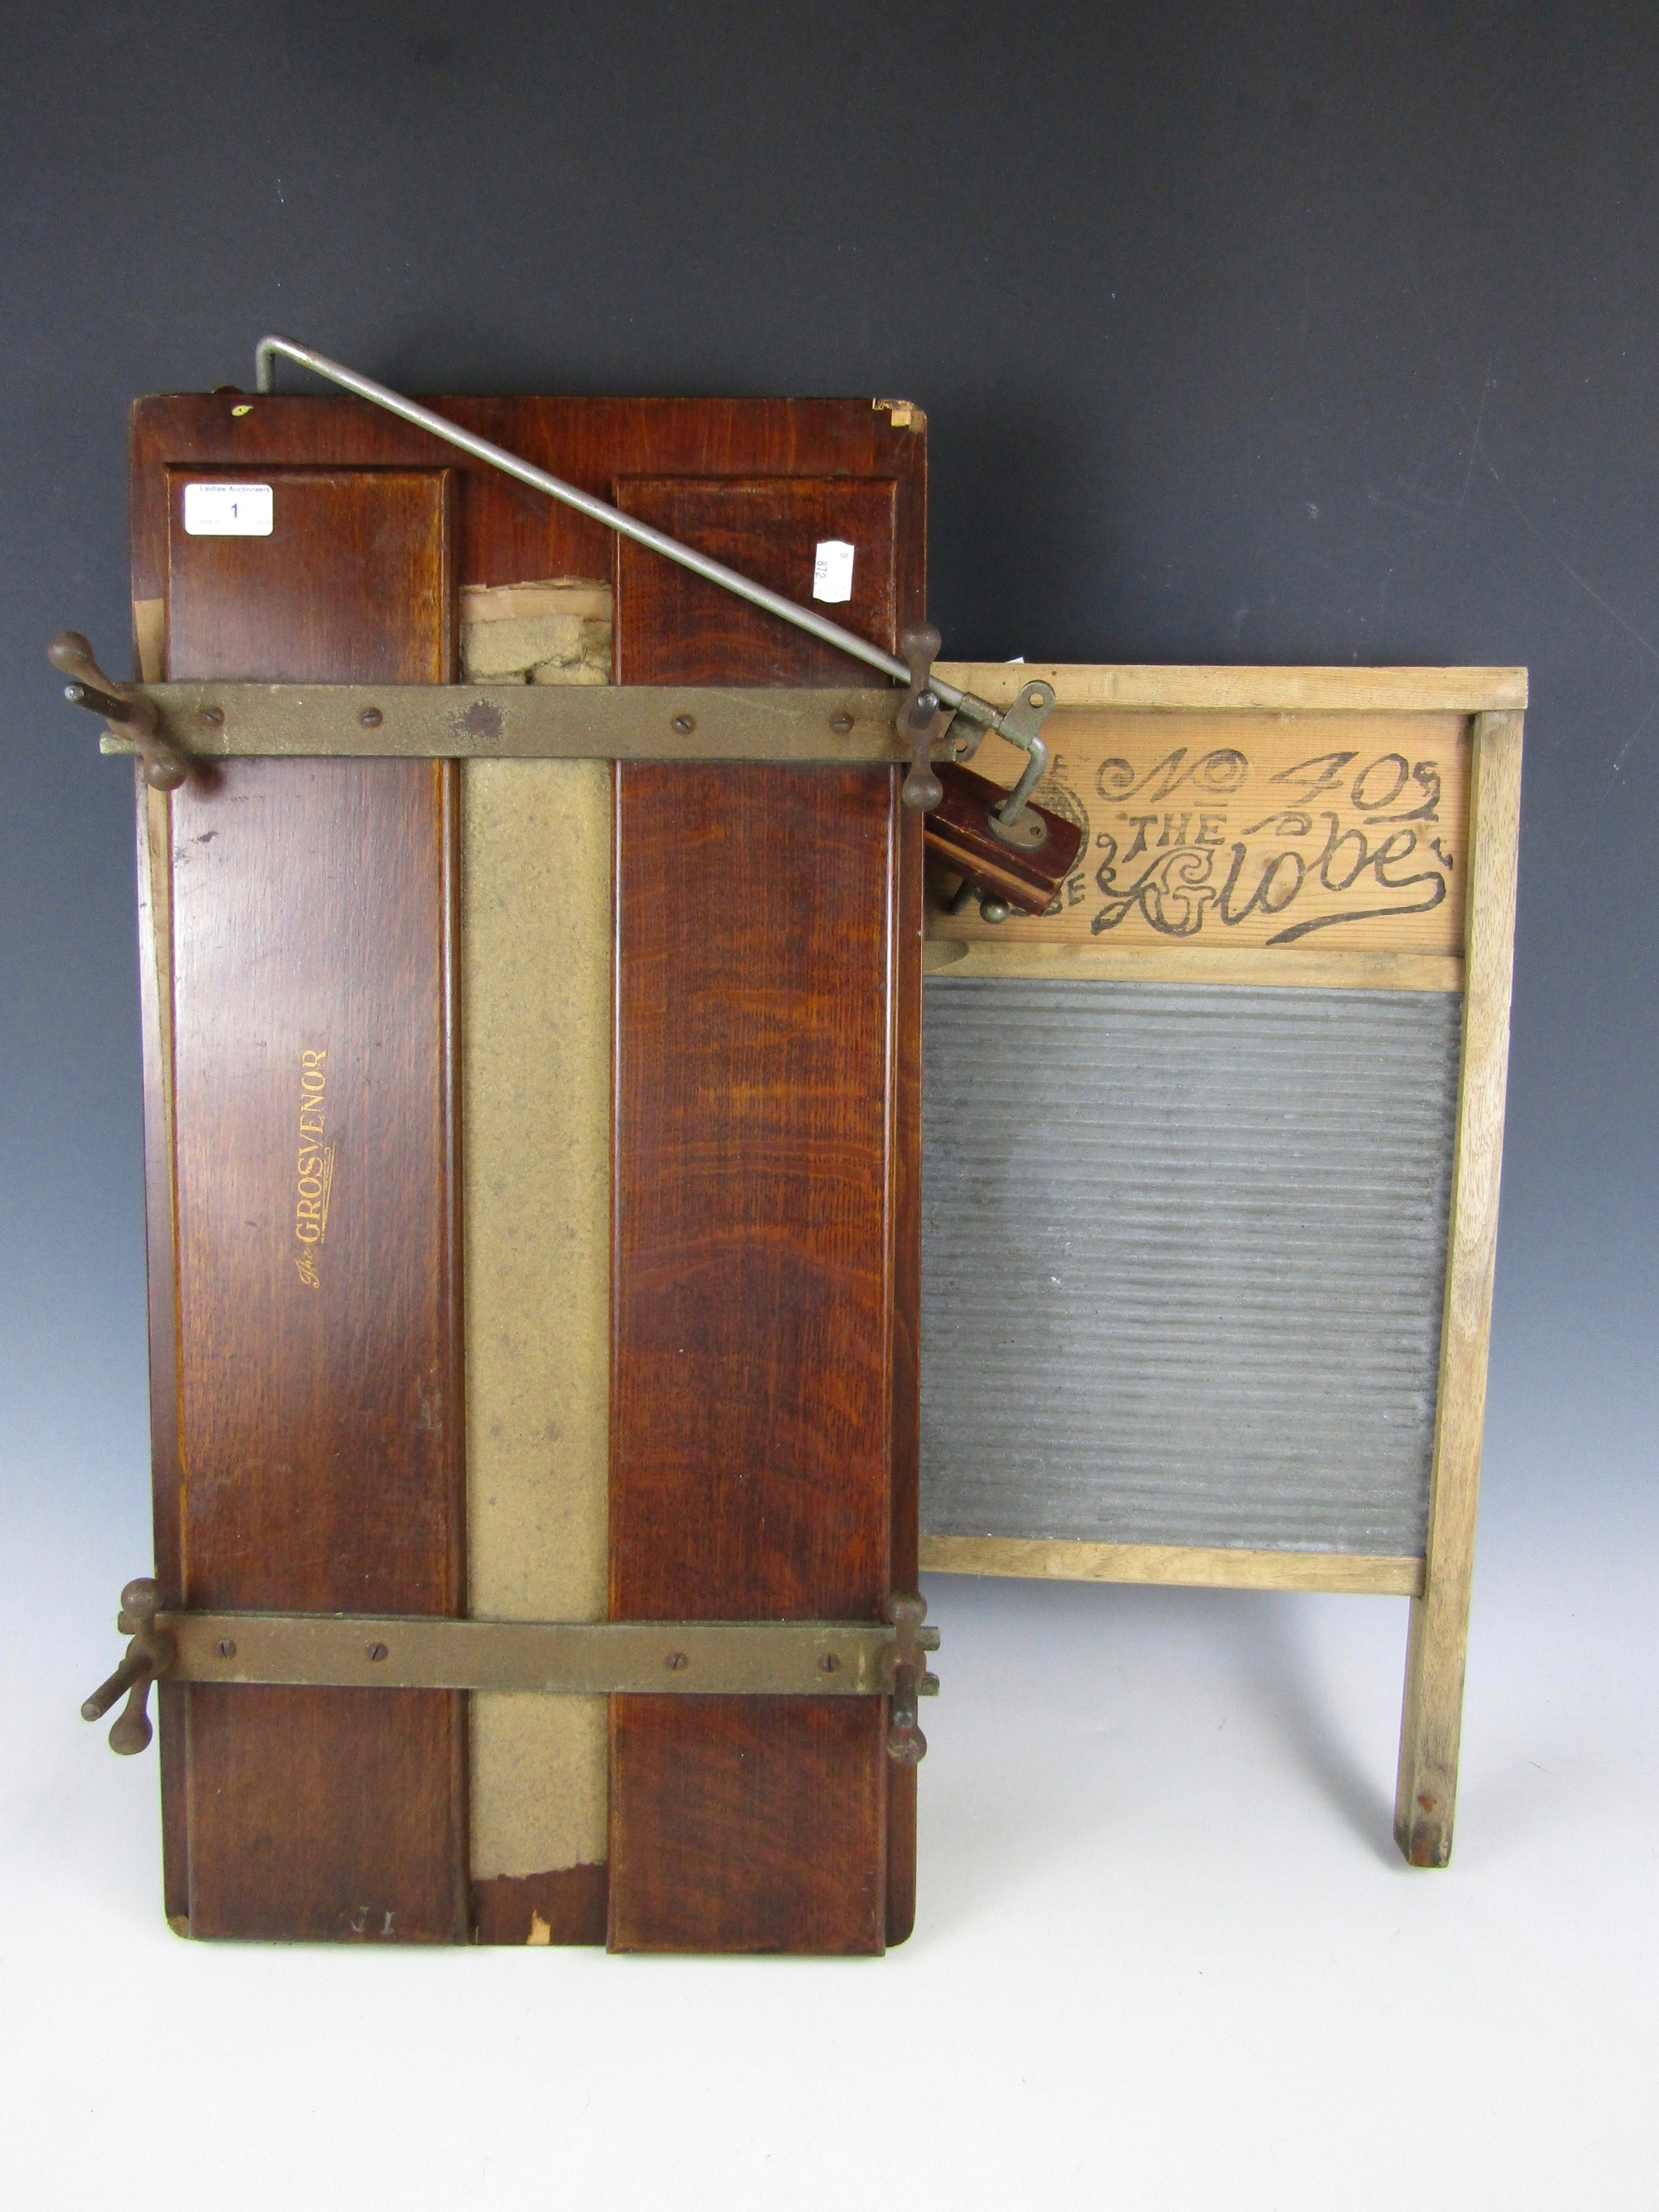 Lot 1 - An early 20th Century 'The Grosvenor' wooden trouser press together with a Globe No. 405 washboard